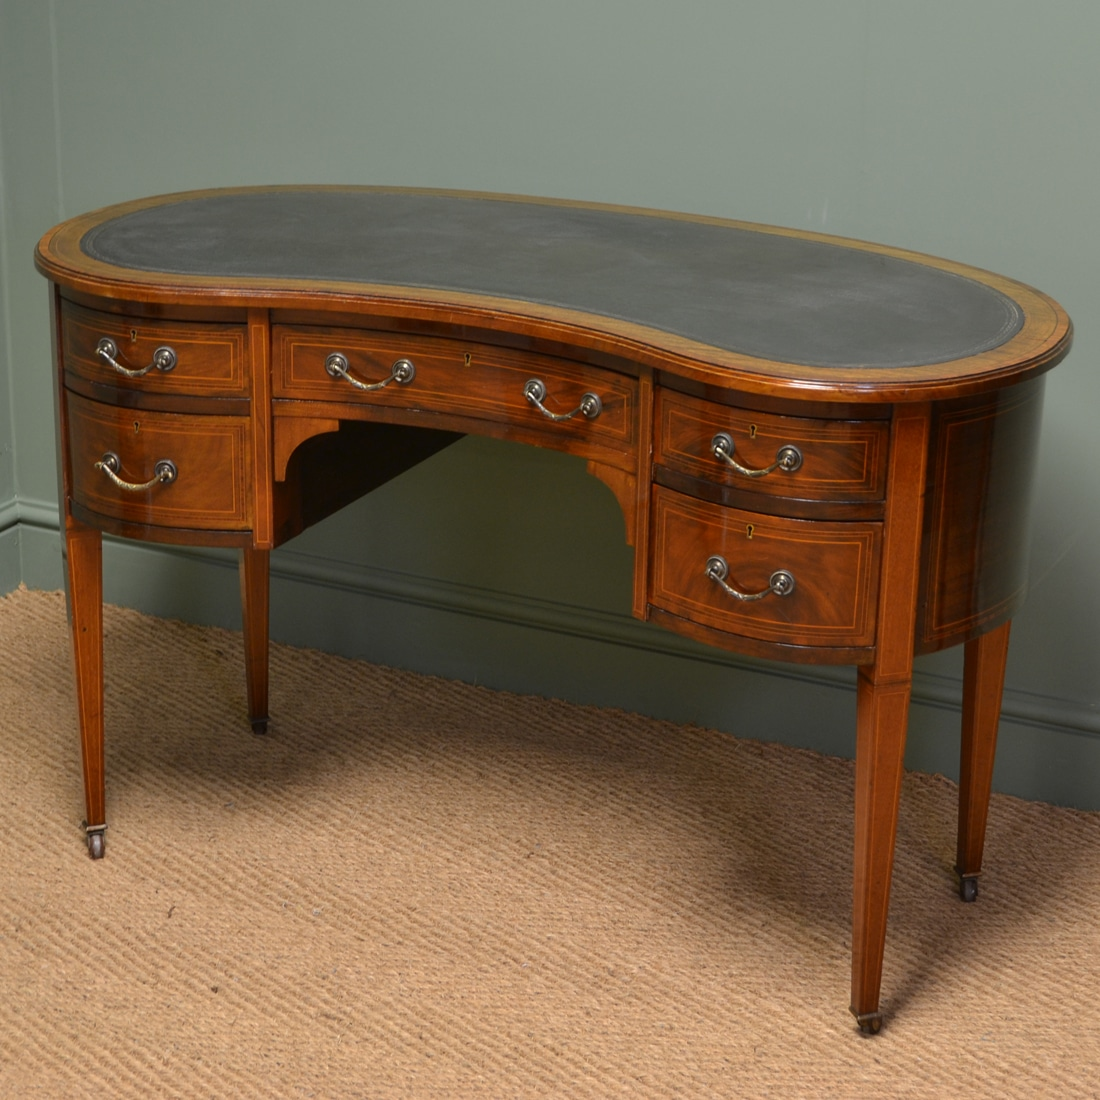 Beautiful Inlaid Victorian Mahogany Antique Kidney Shaped Writing Desk